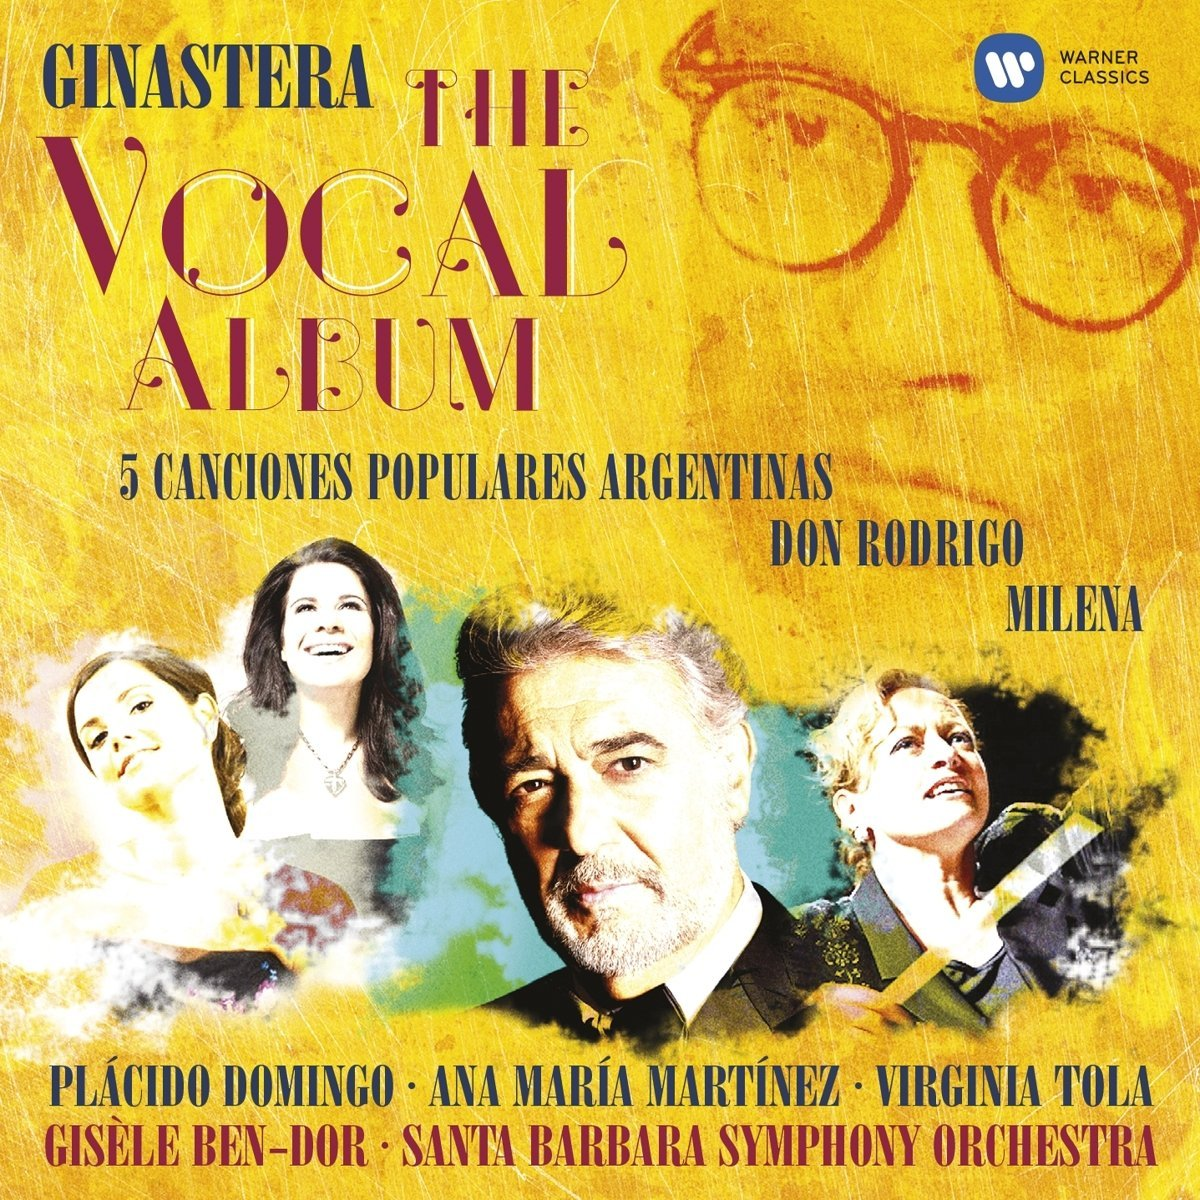 Ginastera: The vocal album